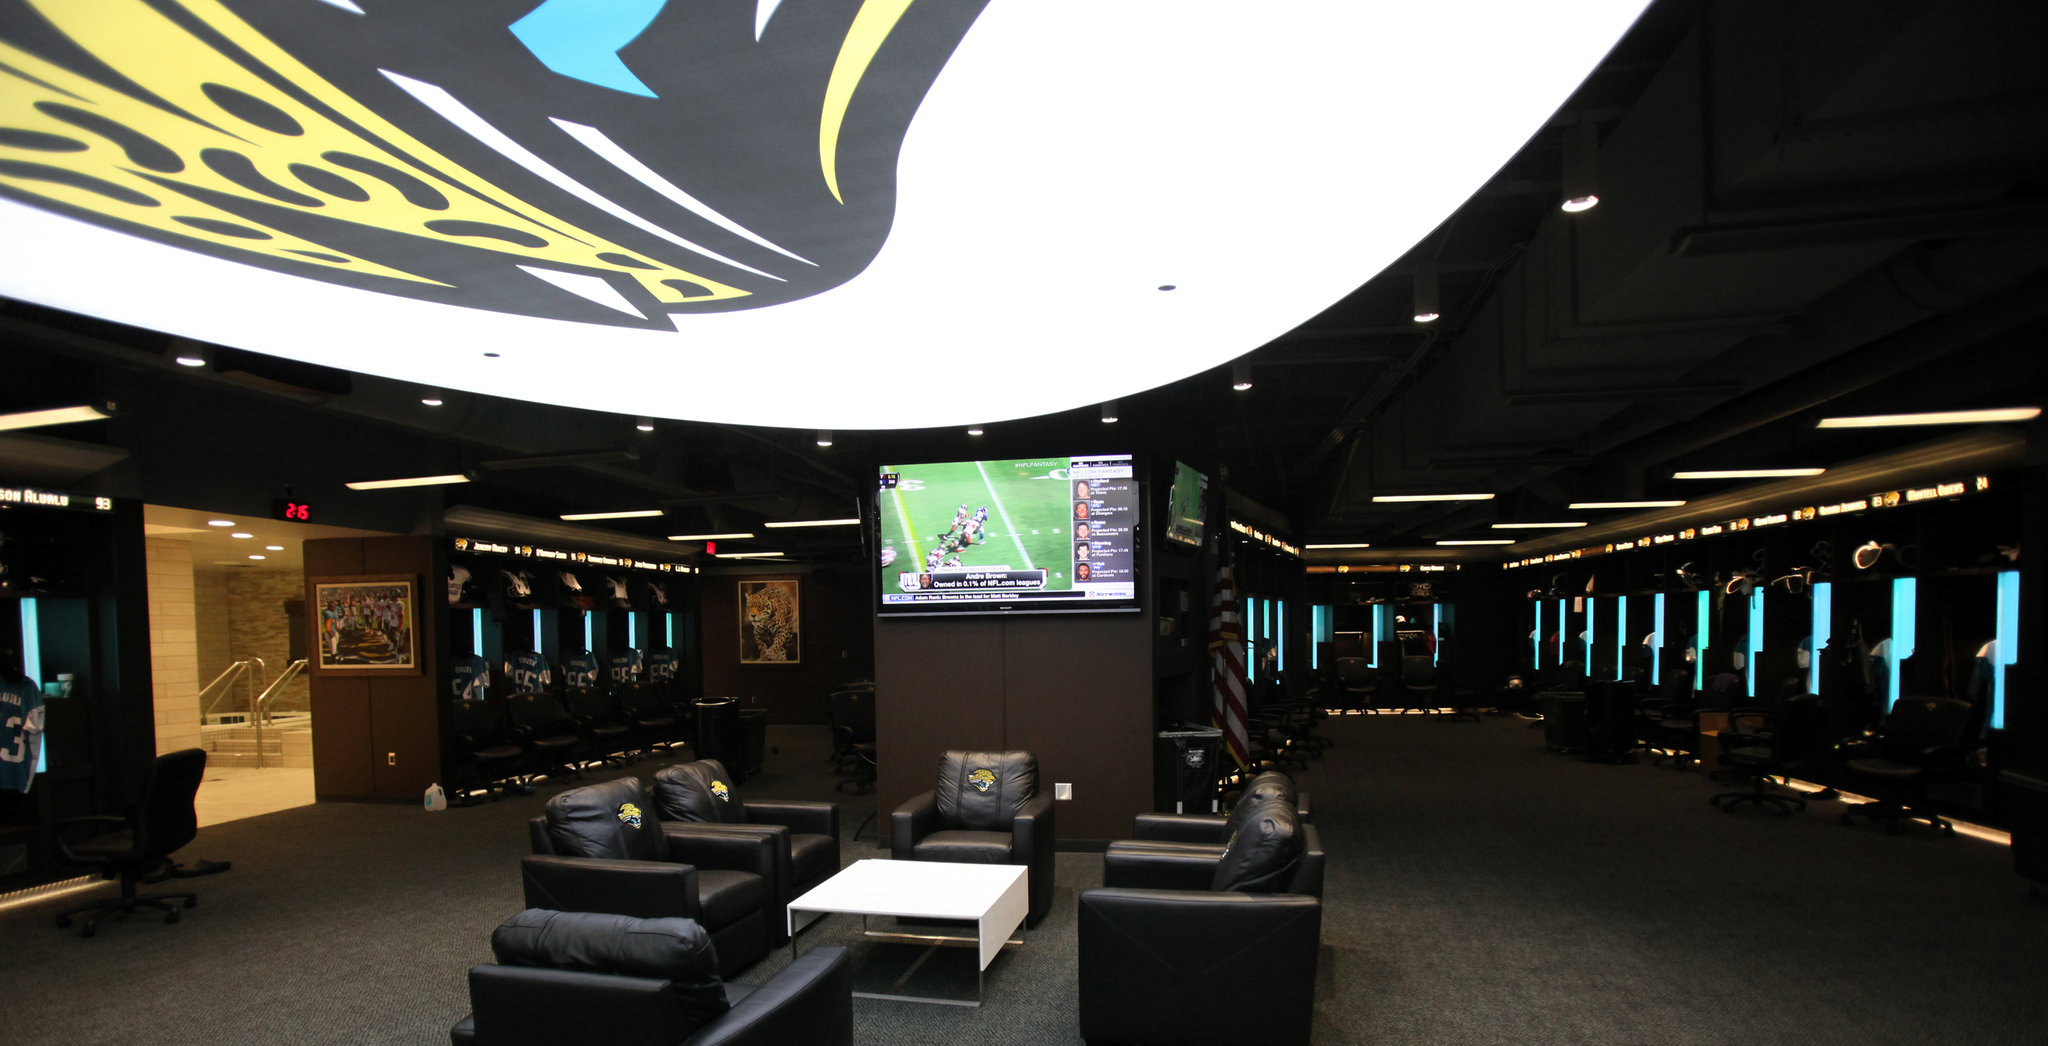 soccer team chairs frozen table and chair set jaguars hope luxurious locker room will overhaul image - the new york times